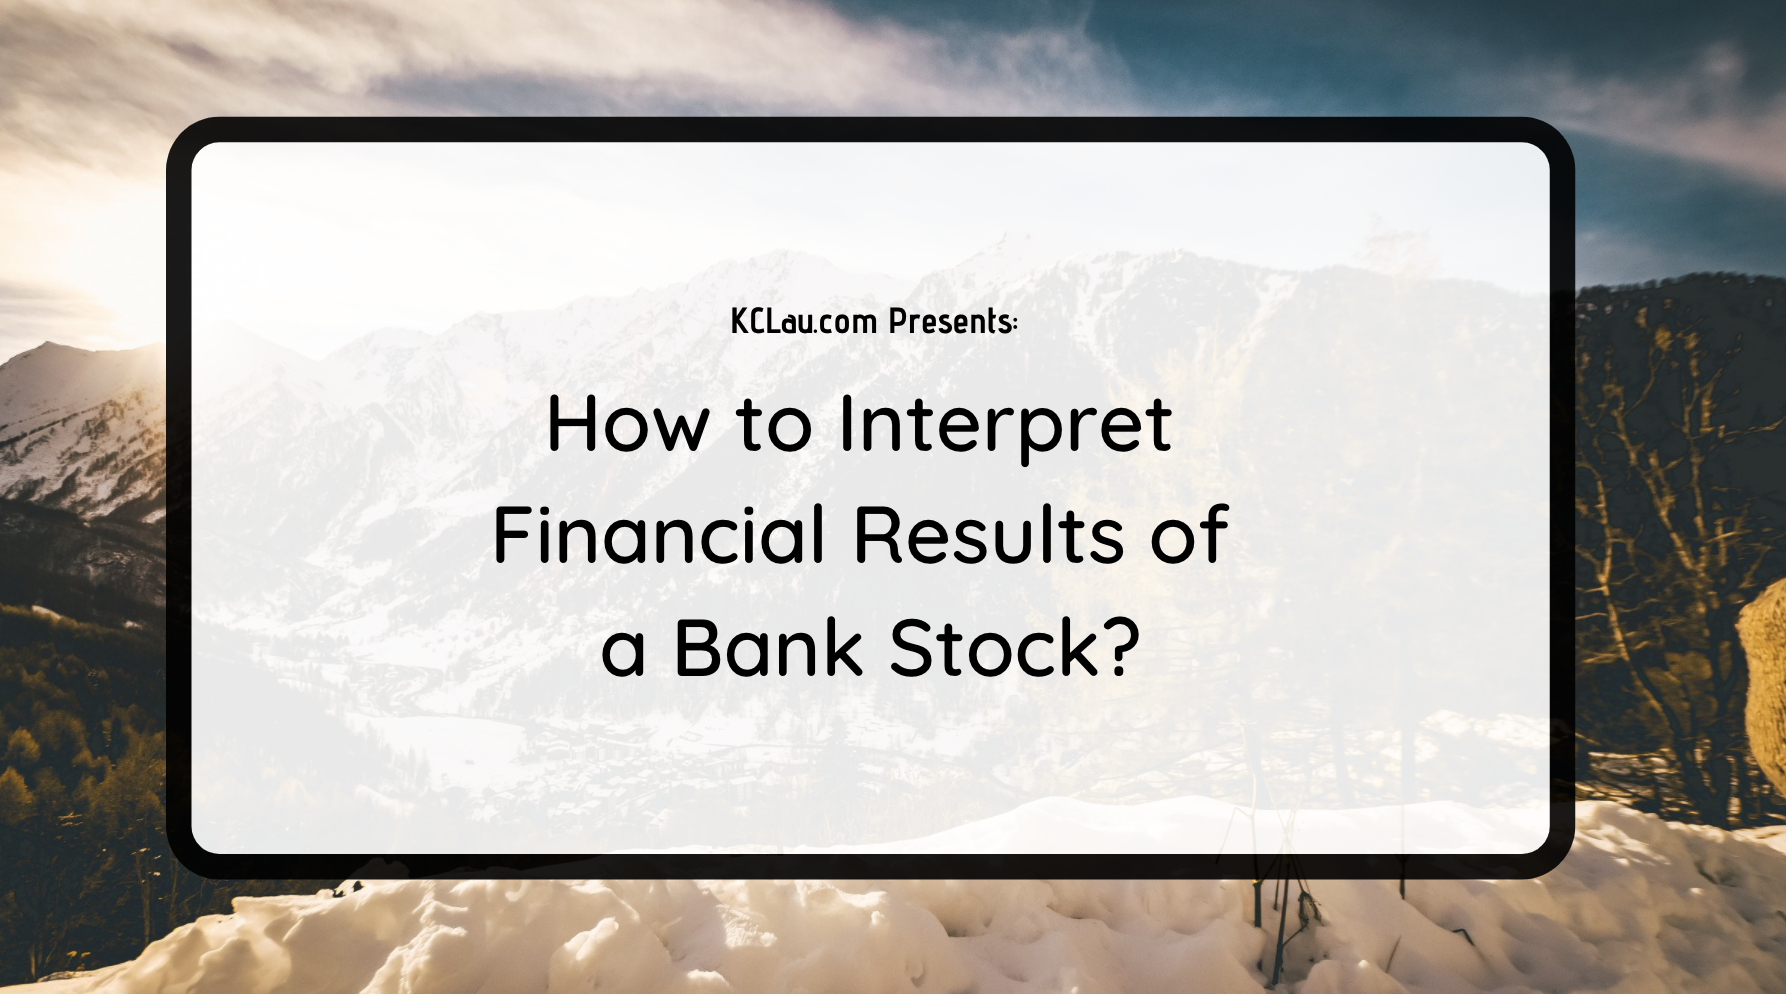 How to Interpret the Financial Results of a Bank Stock?